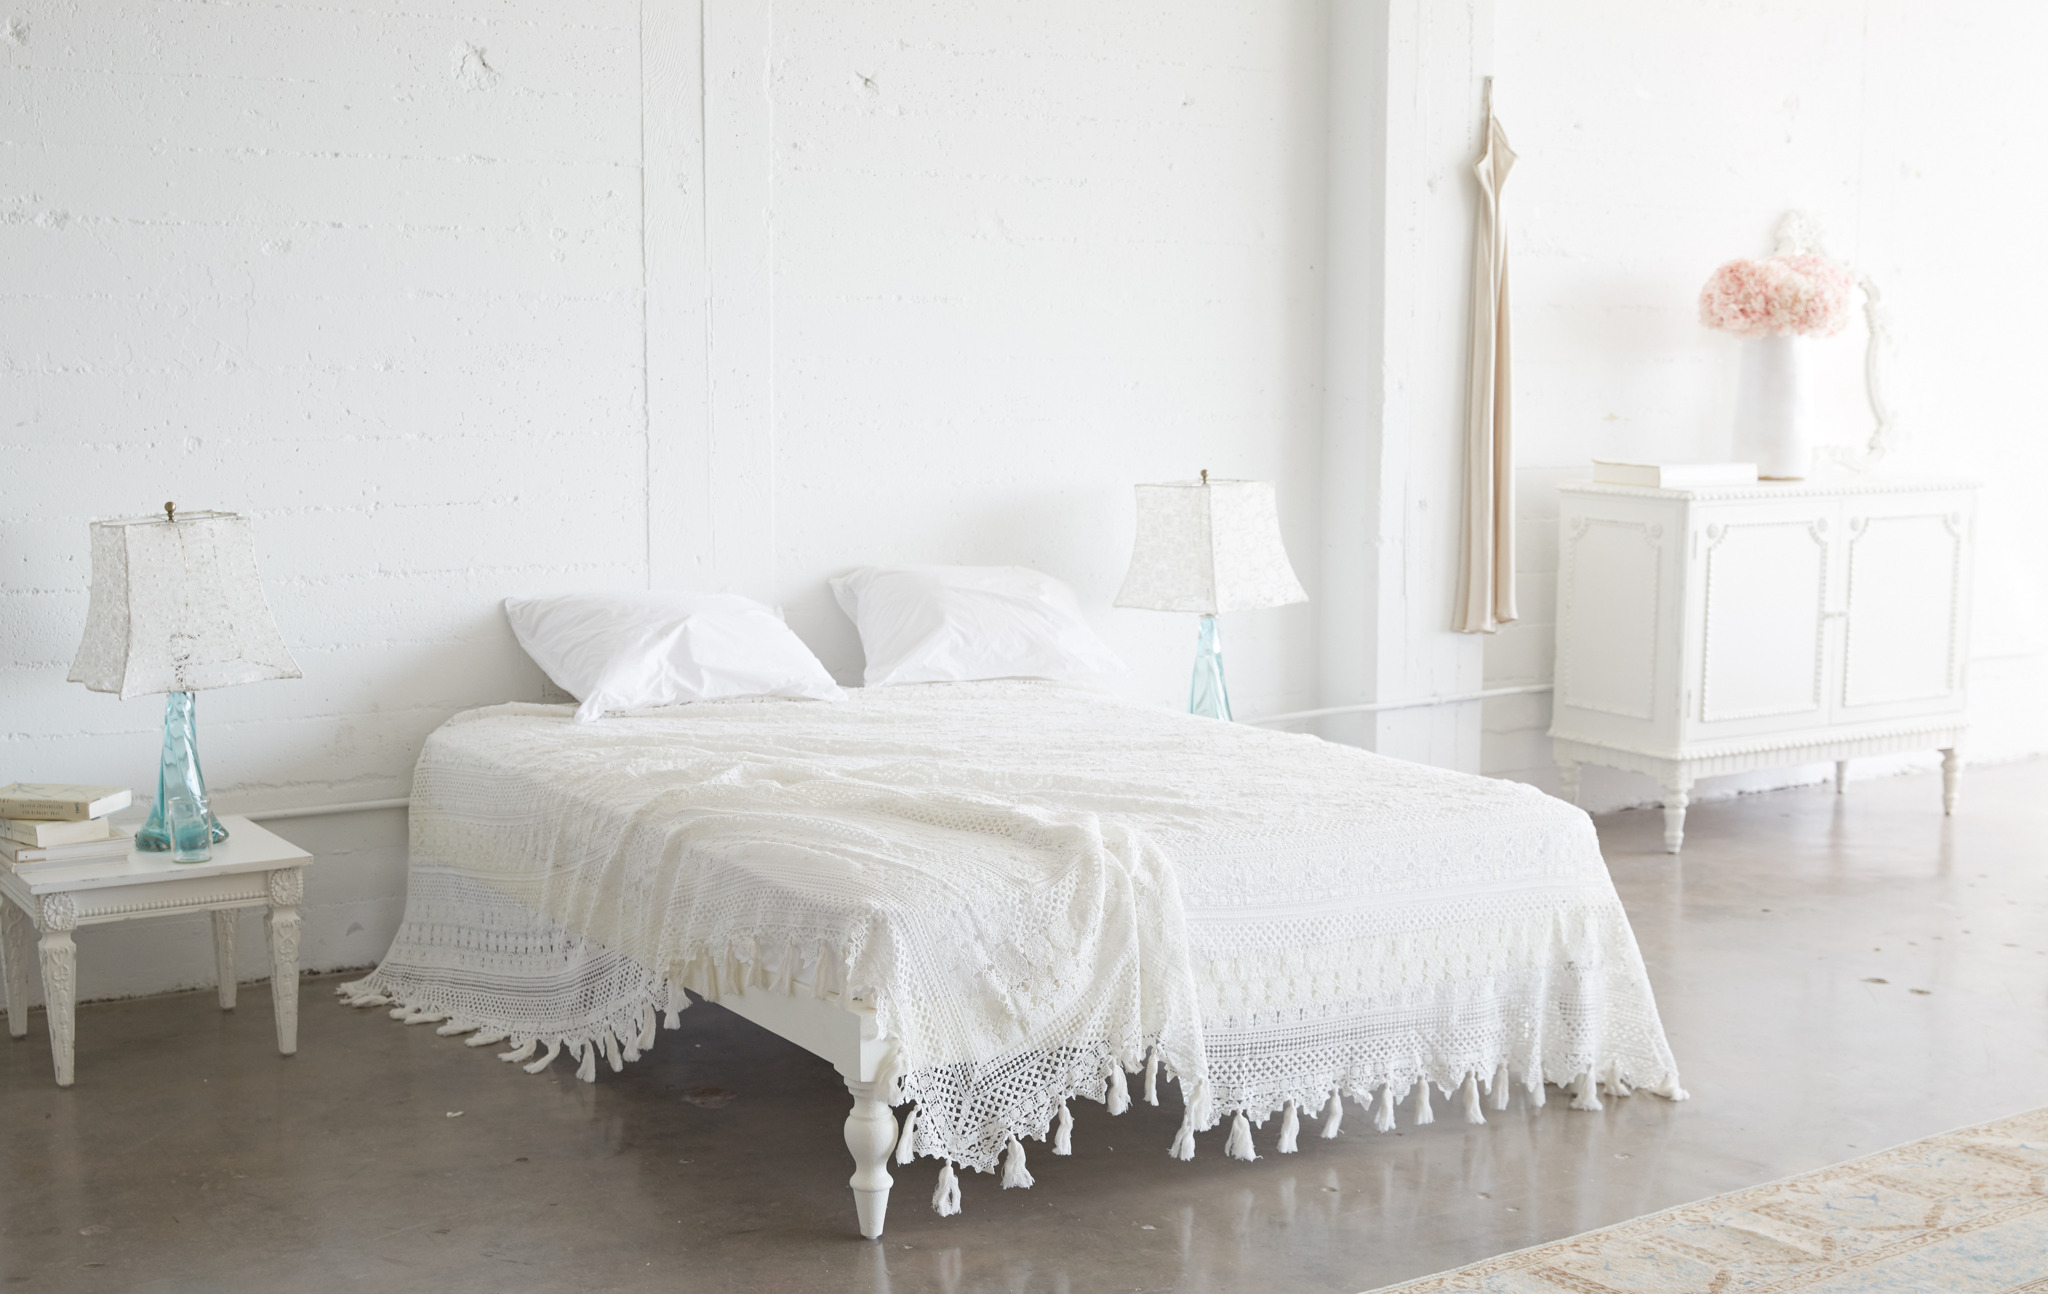 Shabby Chic Decor finds await you in this inspiring lineup of interior design inspiration. #shabbychic #interiordesignideas #decoratingideas #rachelashwell #bedroom